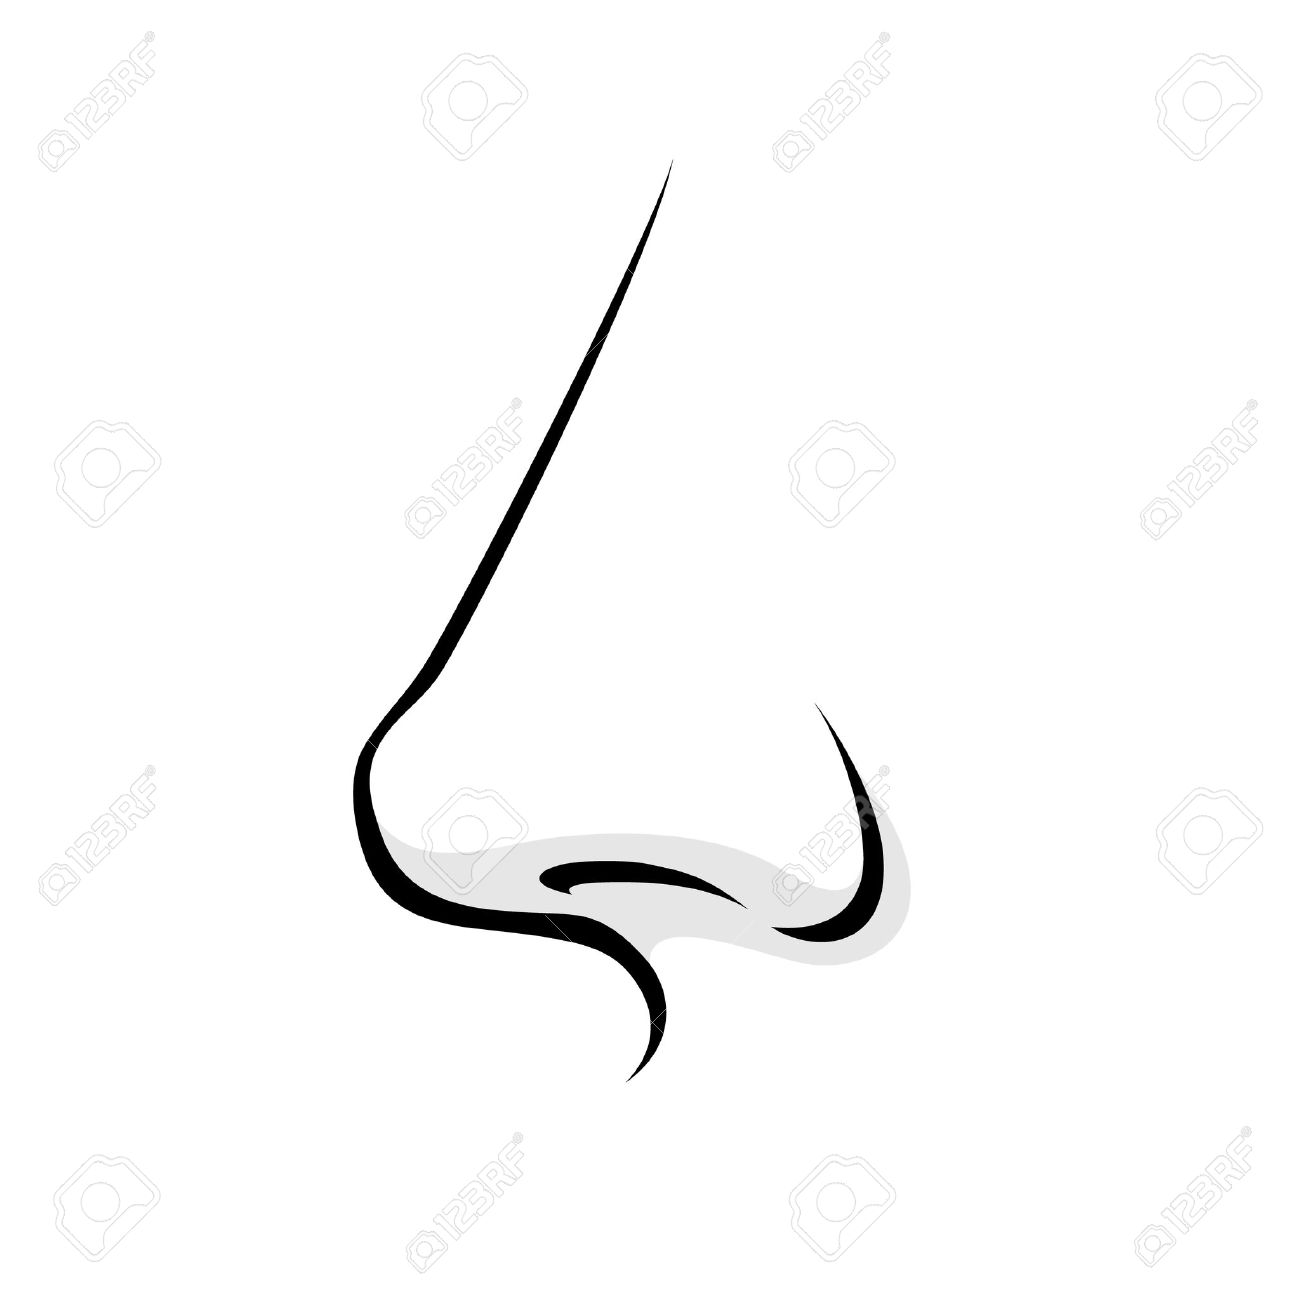 Human nose clipart black and white 7 » Clipart Station.